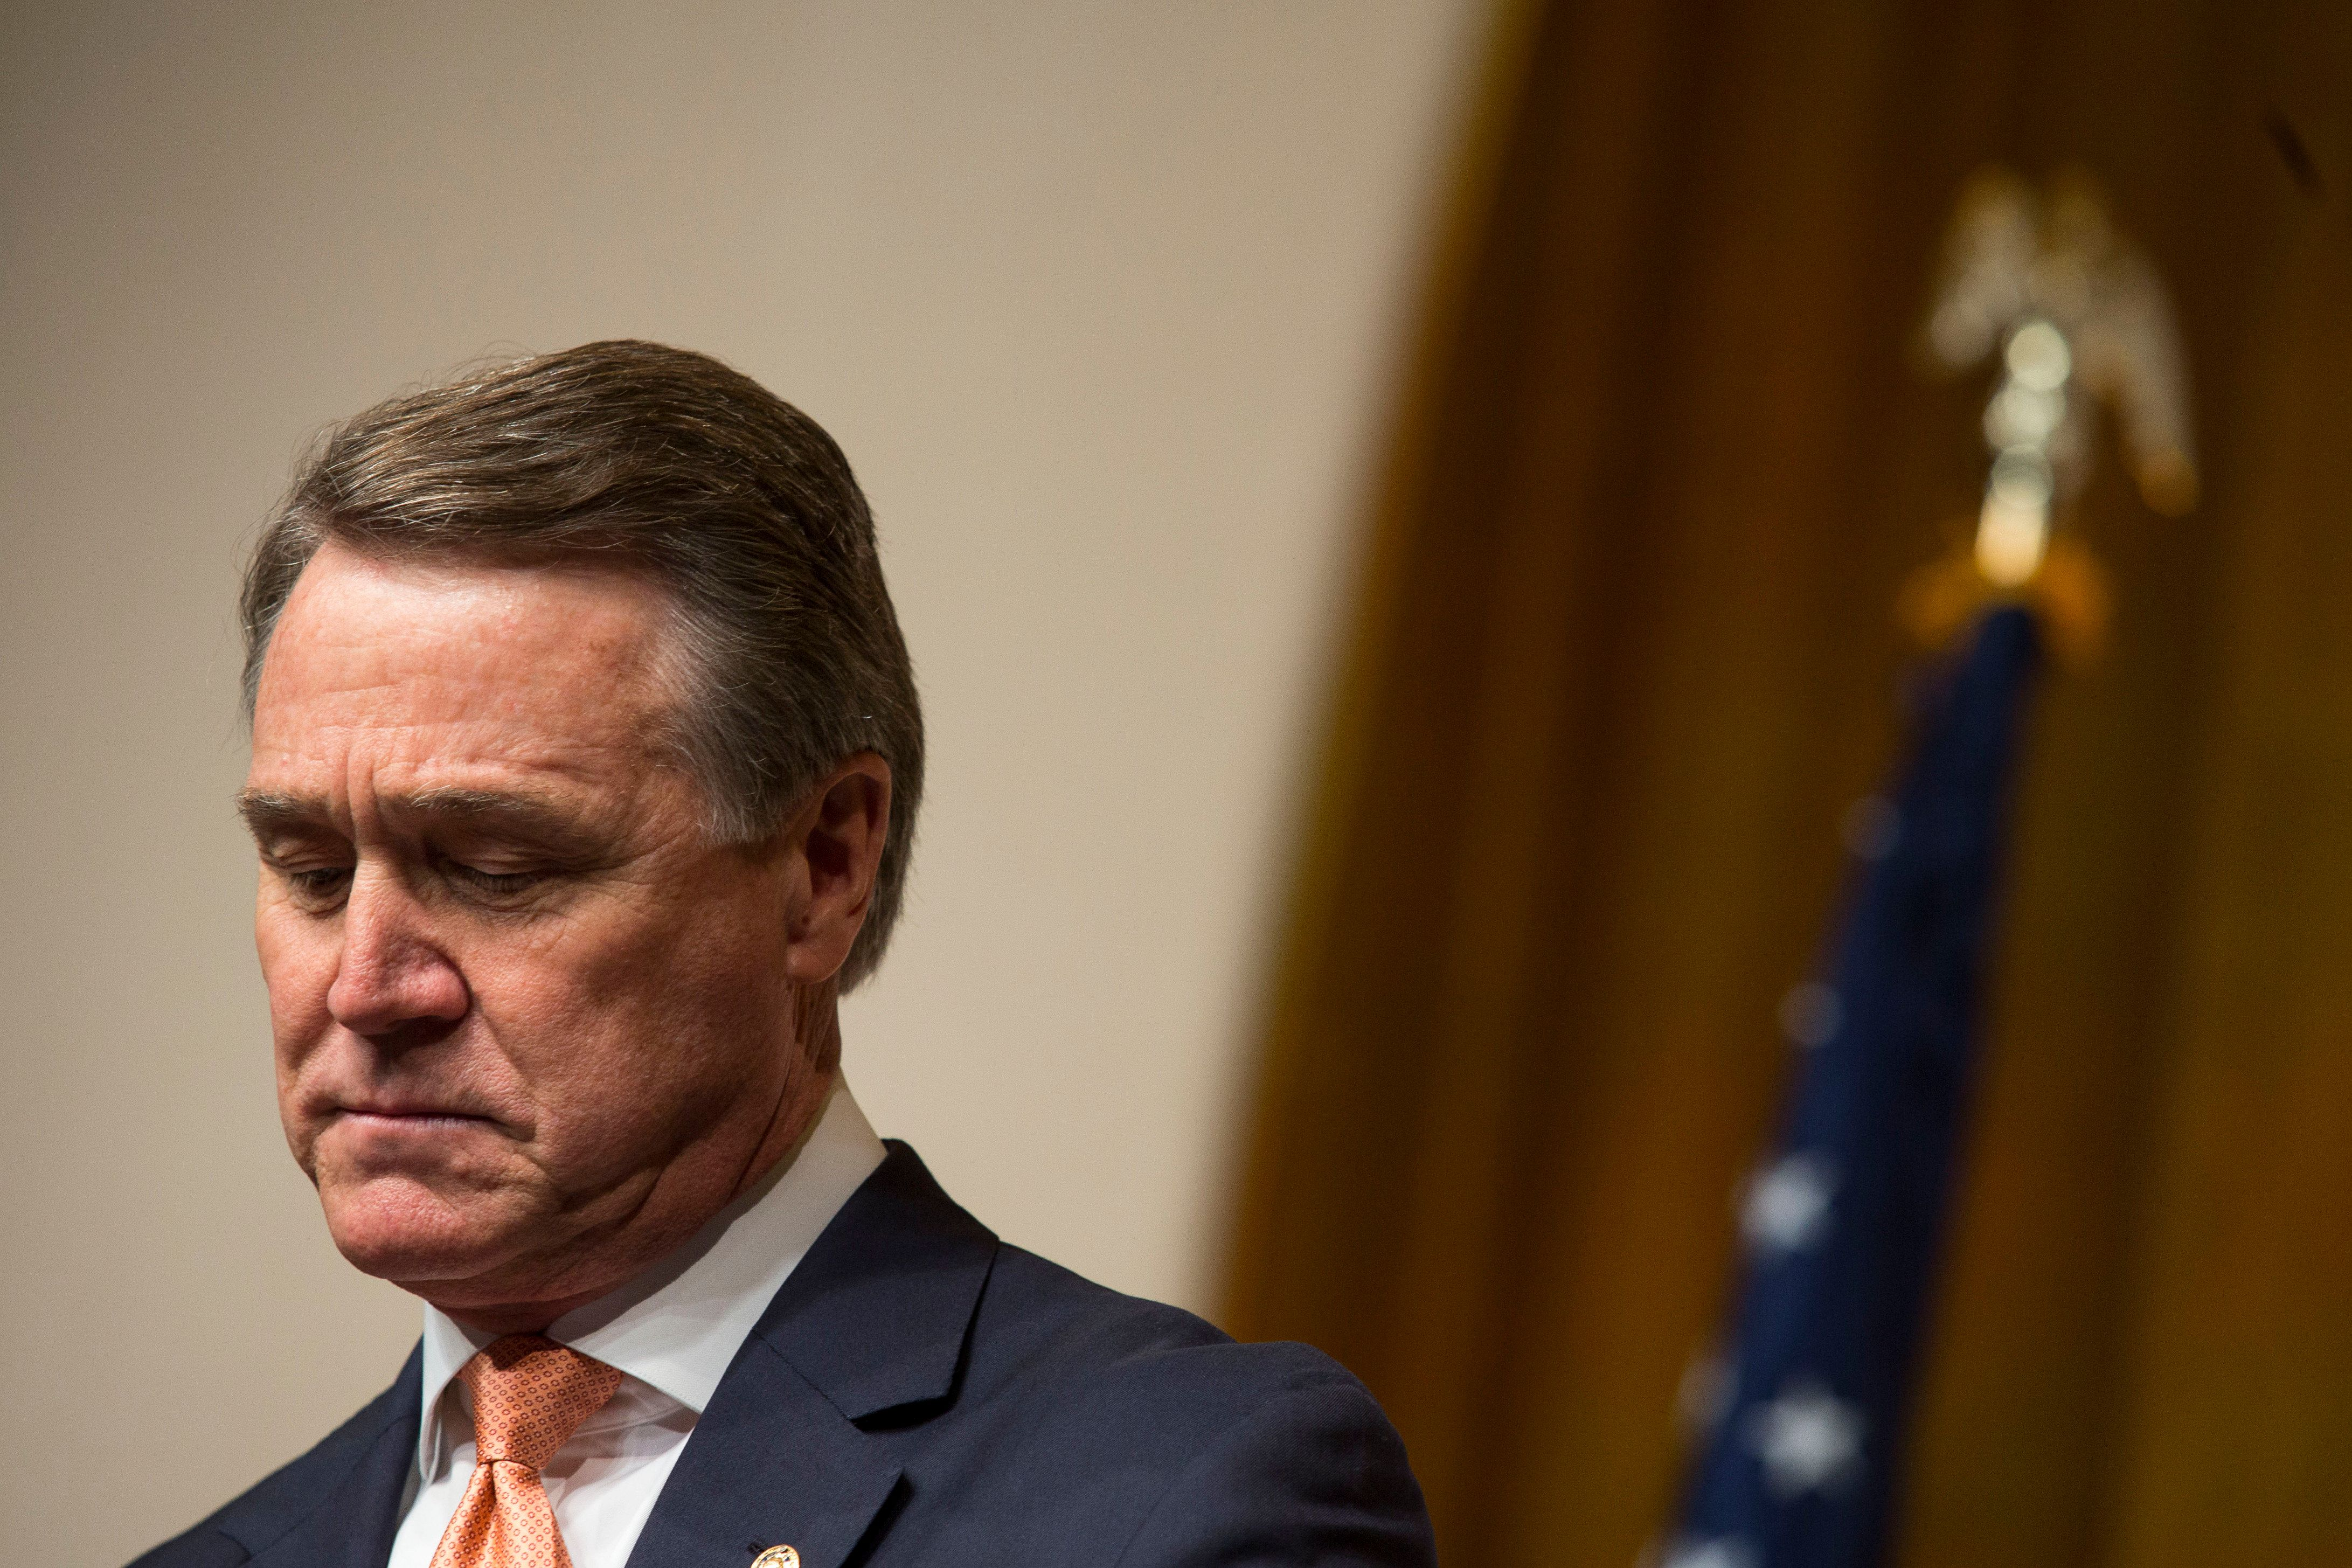 Senator David Perdue, a Republican from Georgia, pauses while speaking during the Faith and Freedom Coalition's 'Road to Majority' conference in Washington, D.C., U.S., on Friday, June 19, 2015. The annual Faith & Freedom Coalition Policy Conference gives top-tier presidential contenders as well as long shots a chance to compete for the large evangelical Christian base in the crowded Republican primary contest. Photographer: Drew Angerer/Bloomberg via Getty Images